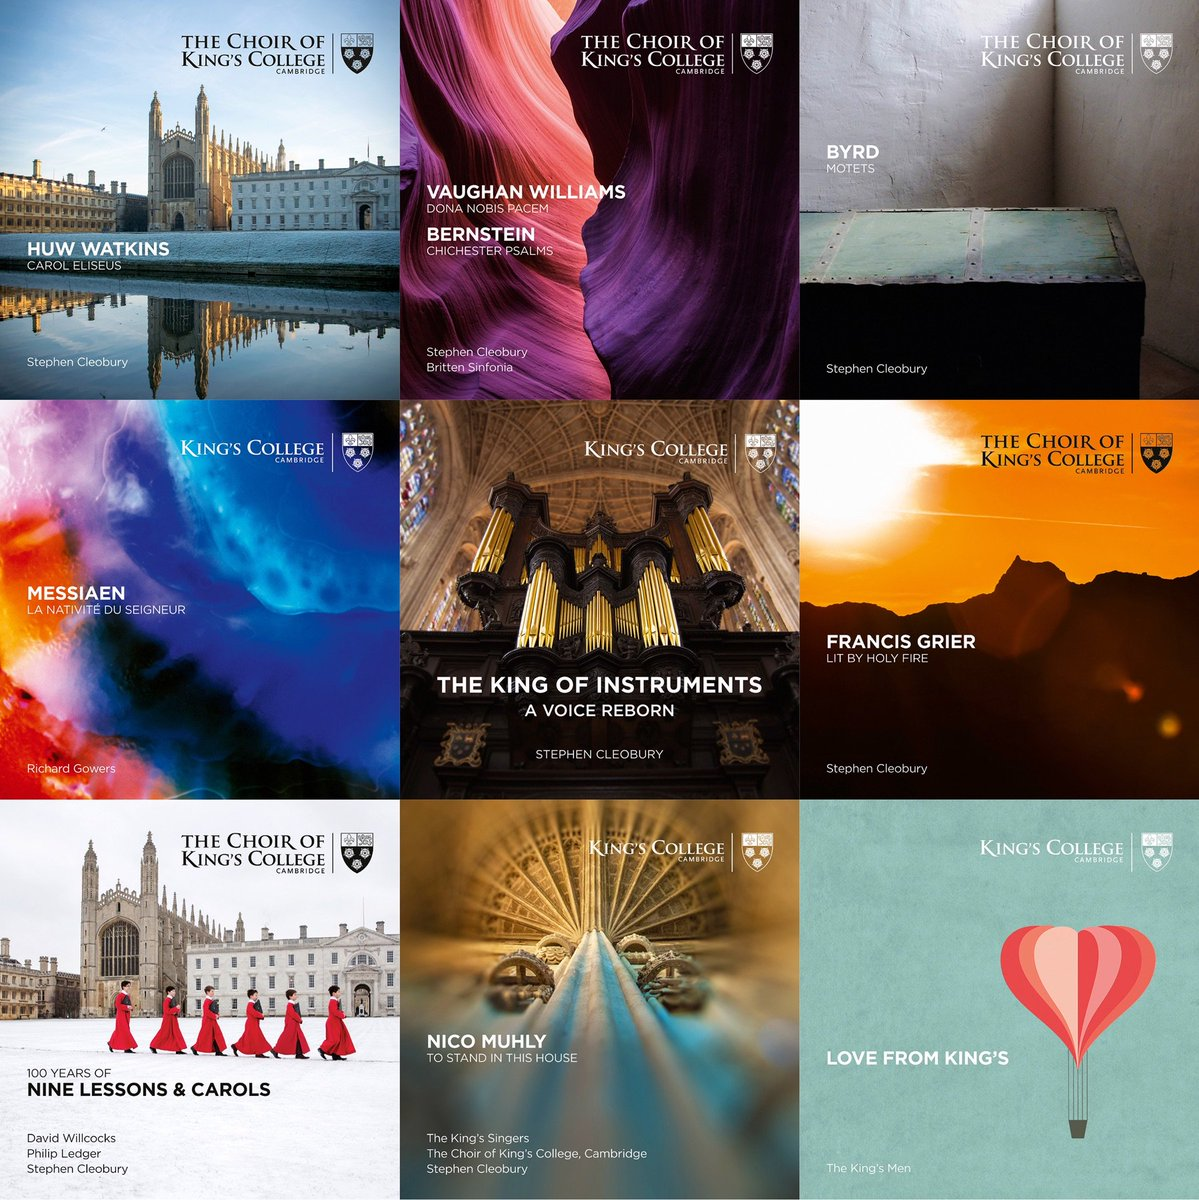 King's College Choir on Twitter: